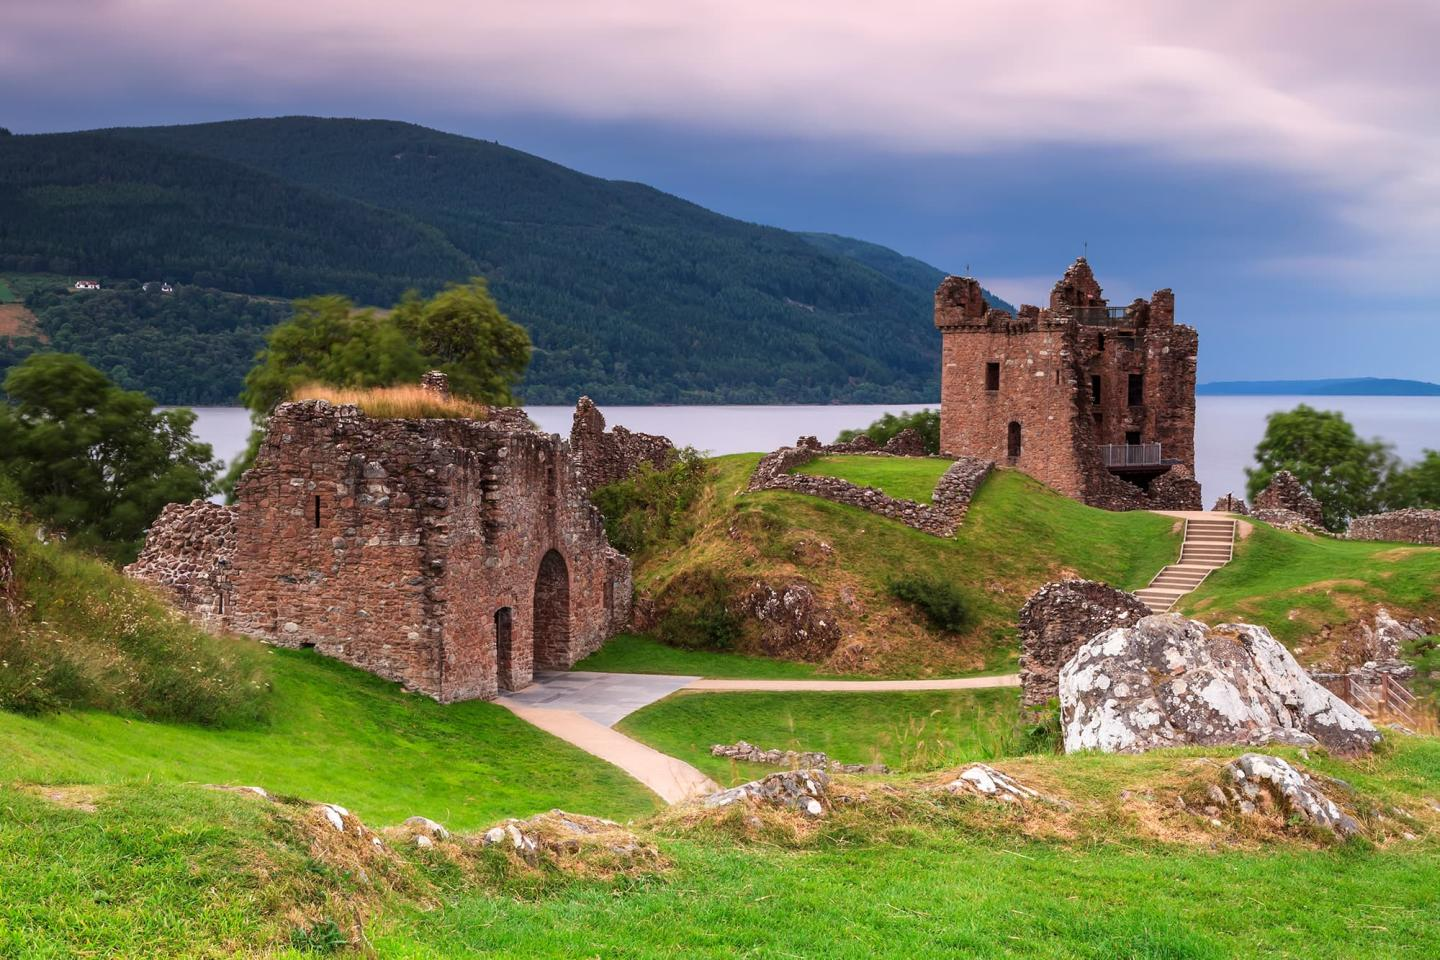 The Ruins of Urqurhart Castle At Loch Ness